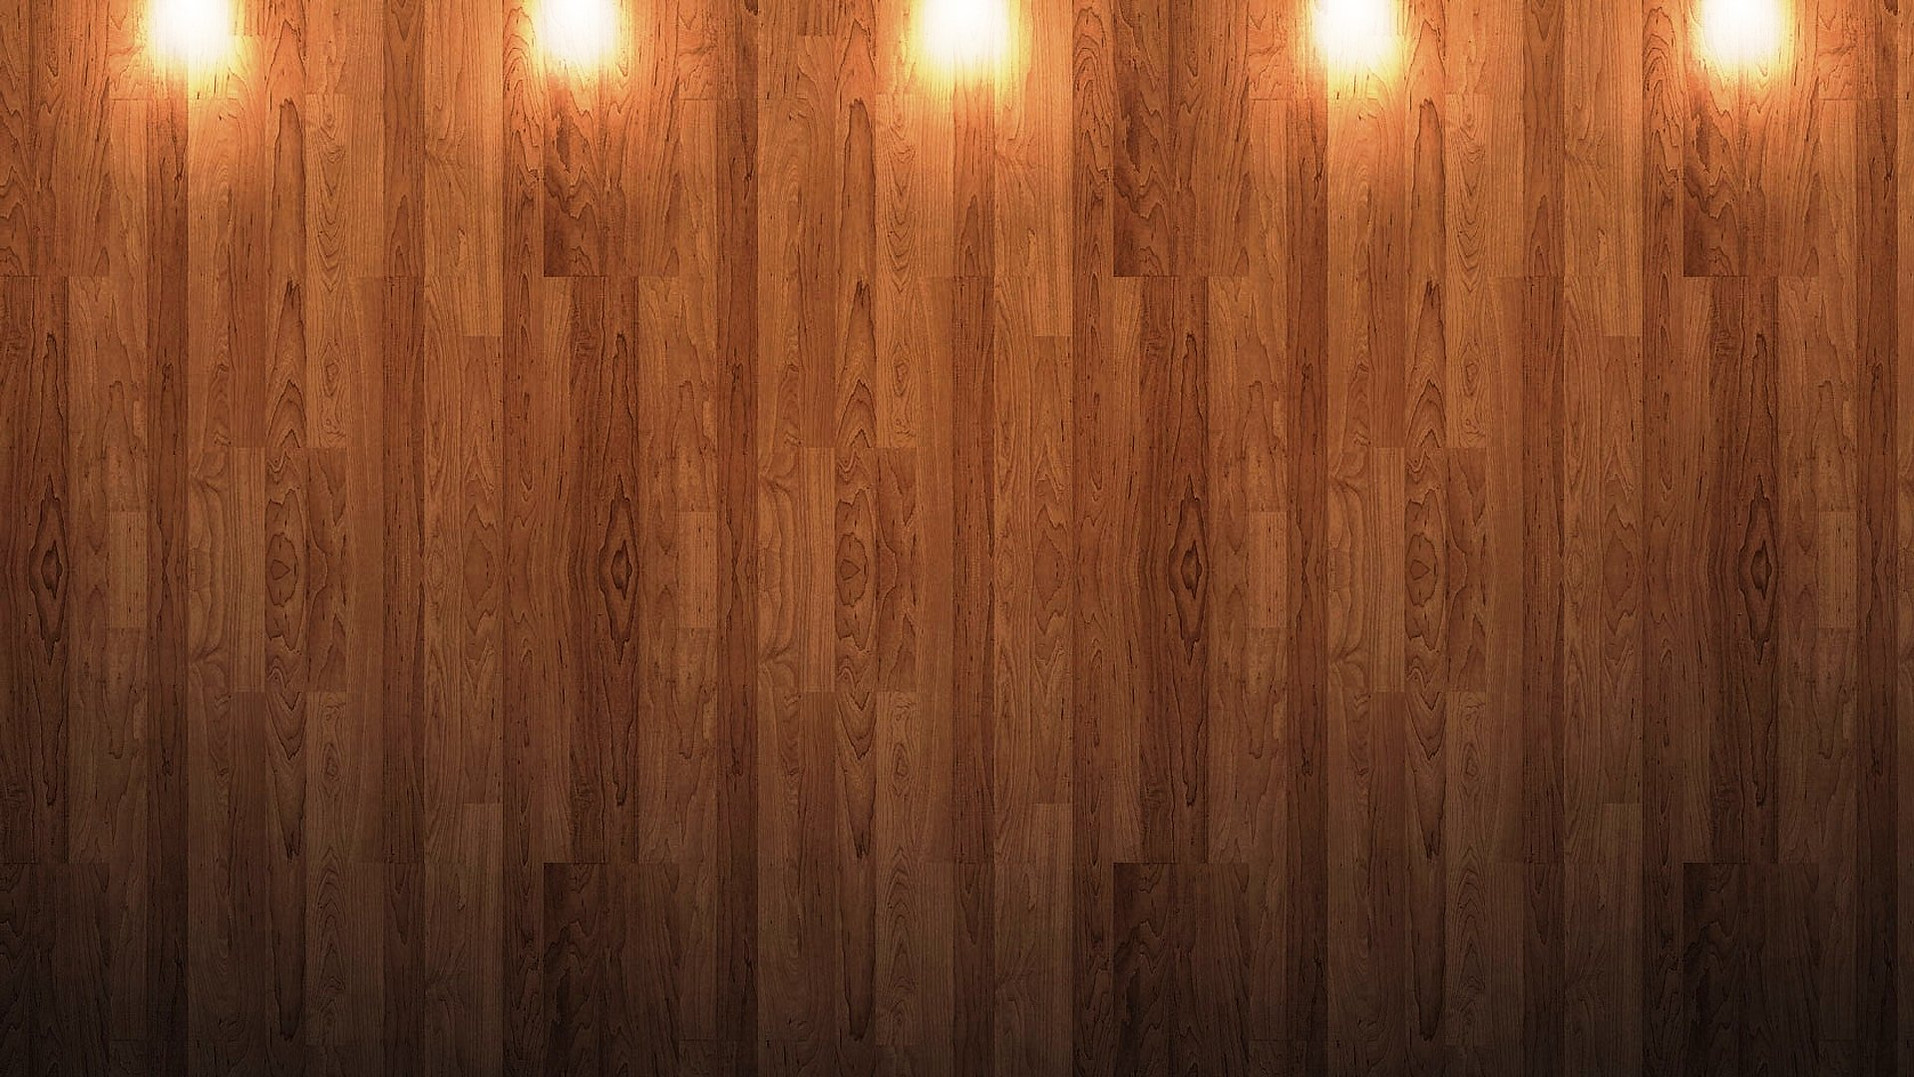 wood-wallpaper-20.jpg